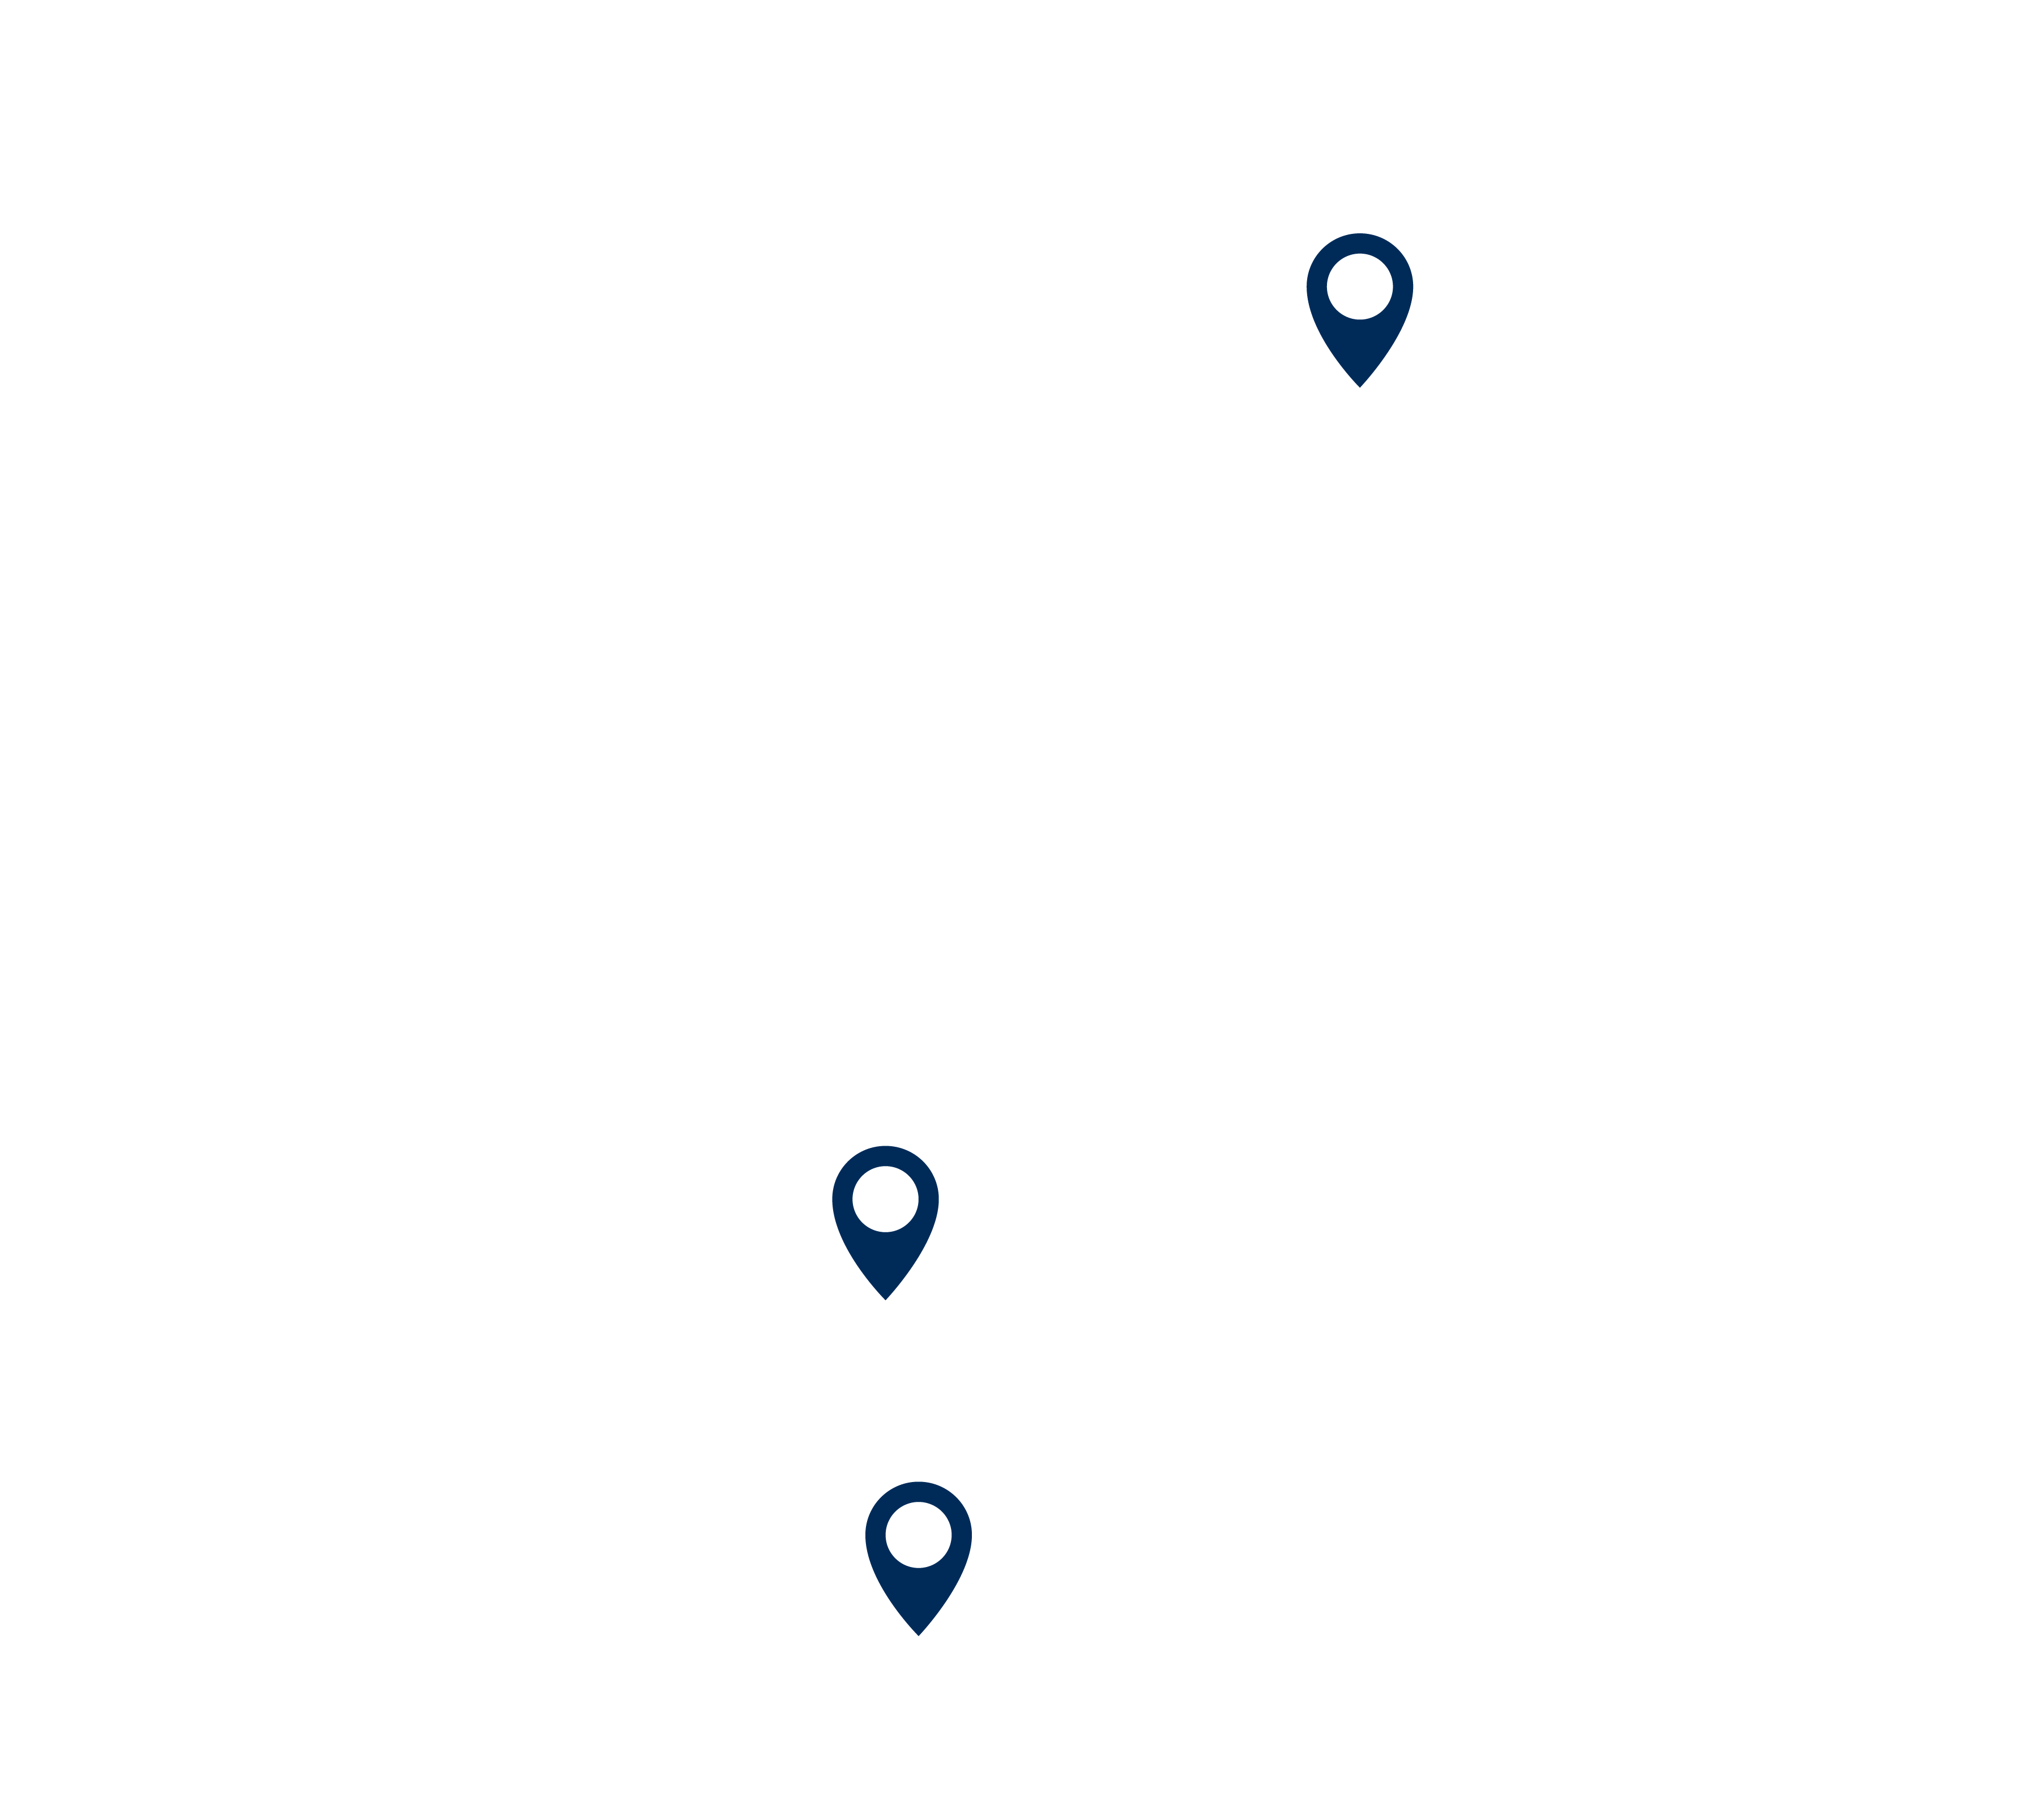 United States and Mexico map